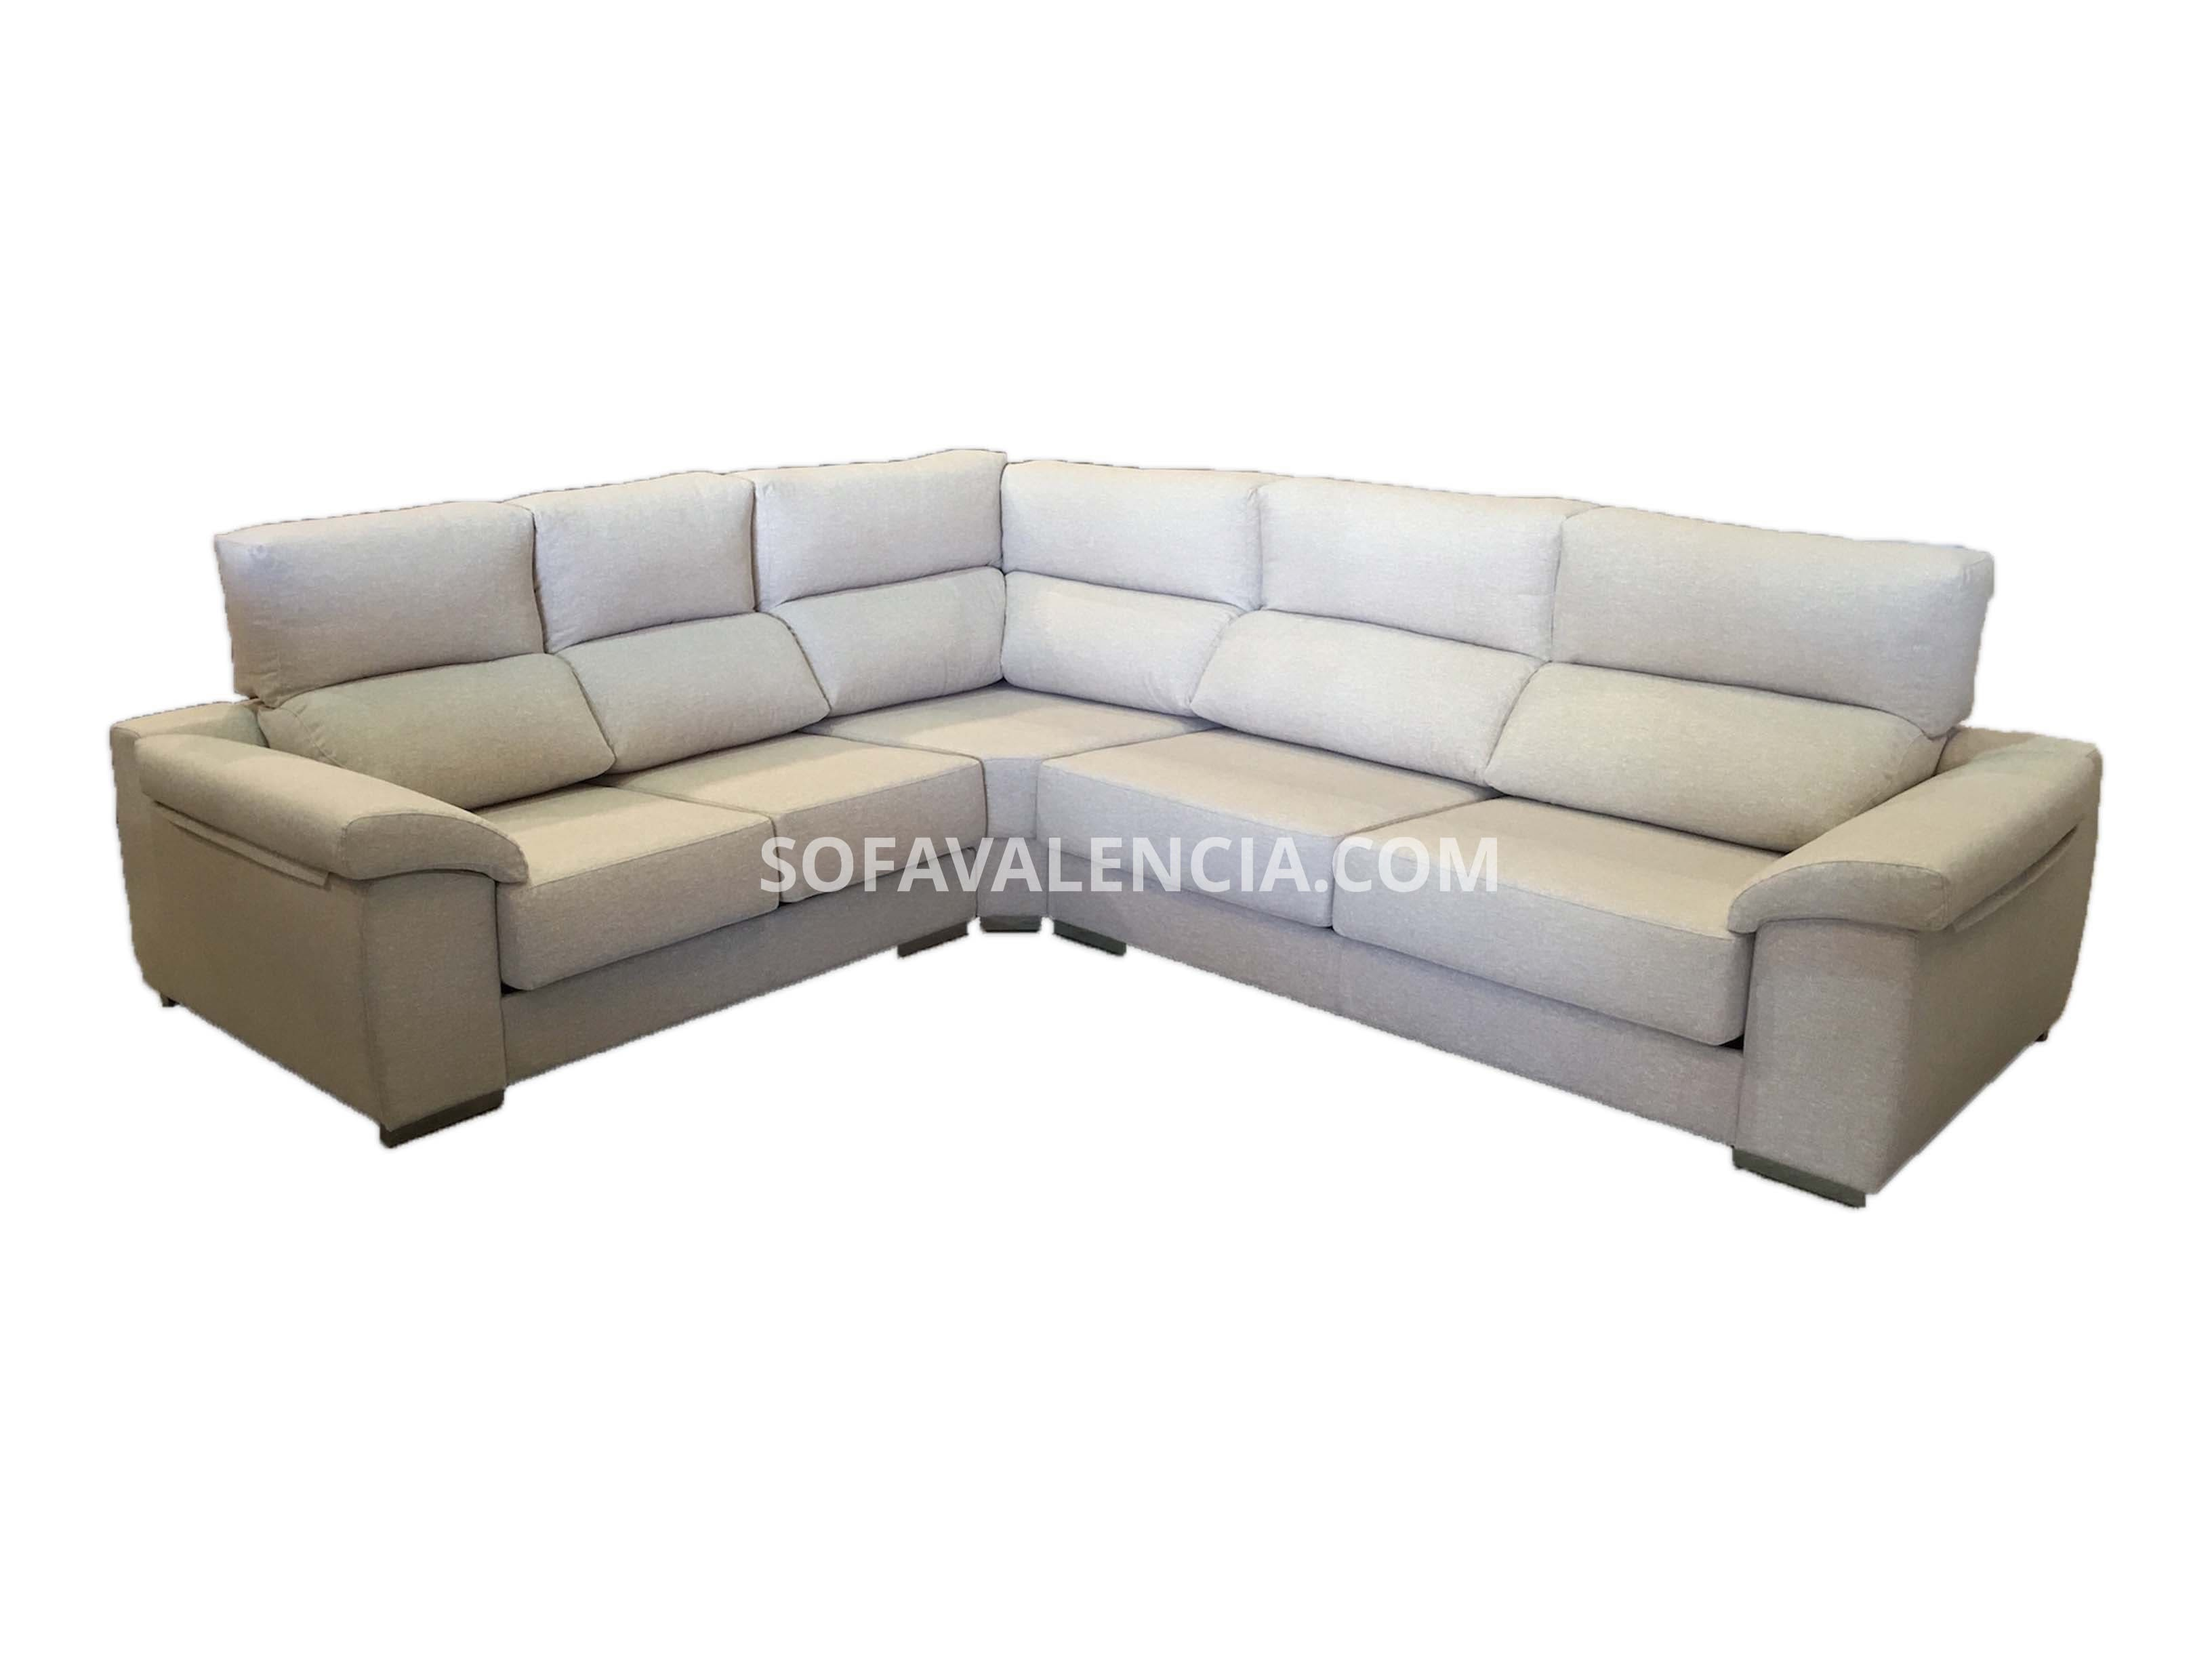 Sofas Esquineros Baratos Madrid Home